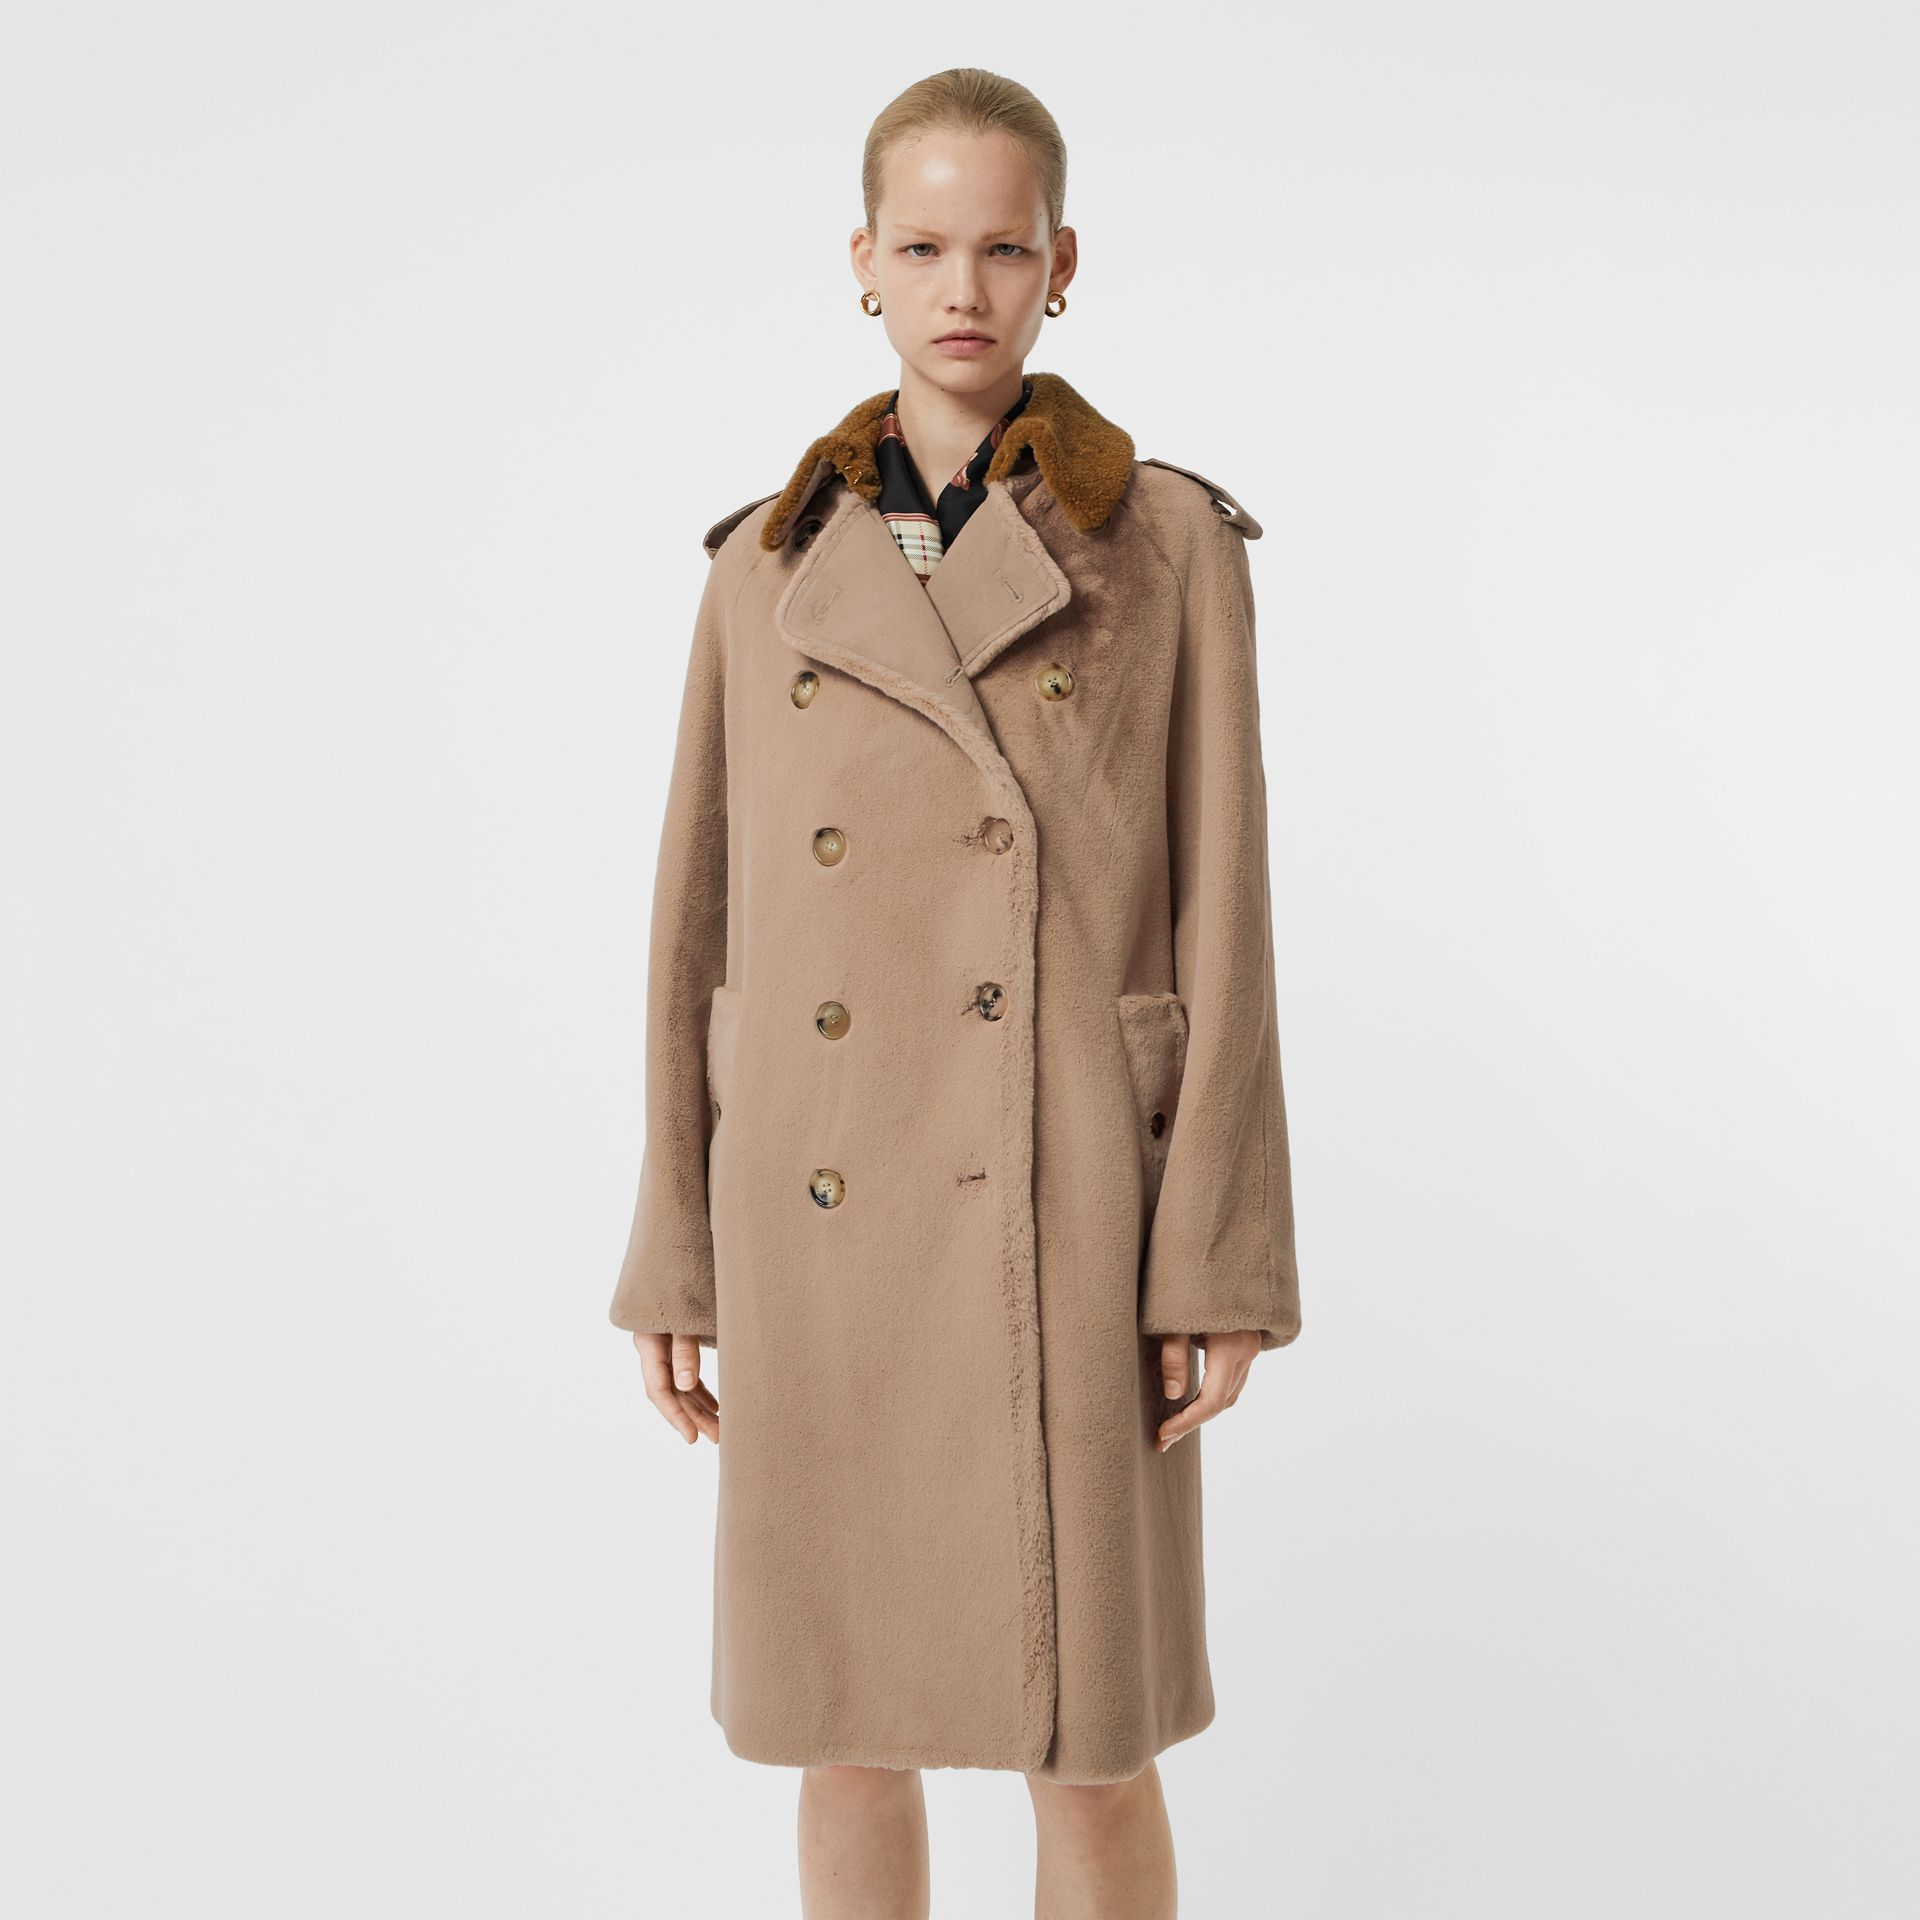 Shearling Trim Faux Fur Trench Coat in Taupe - Women | Burberry - gallery image 6